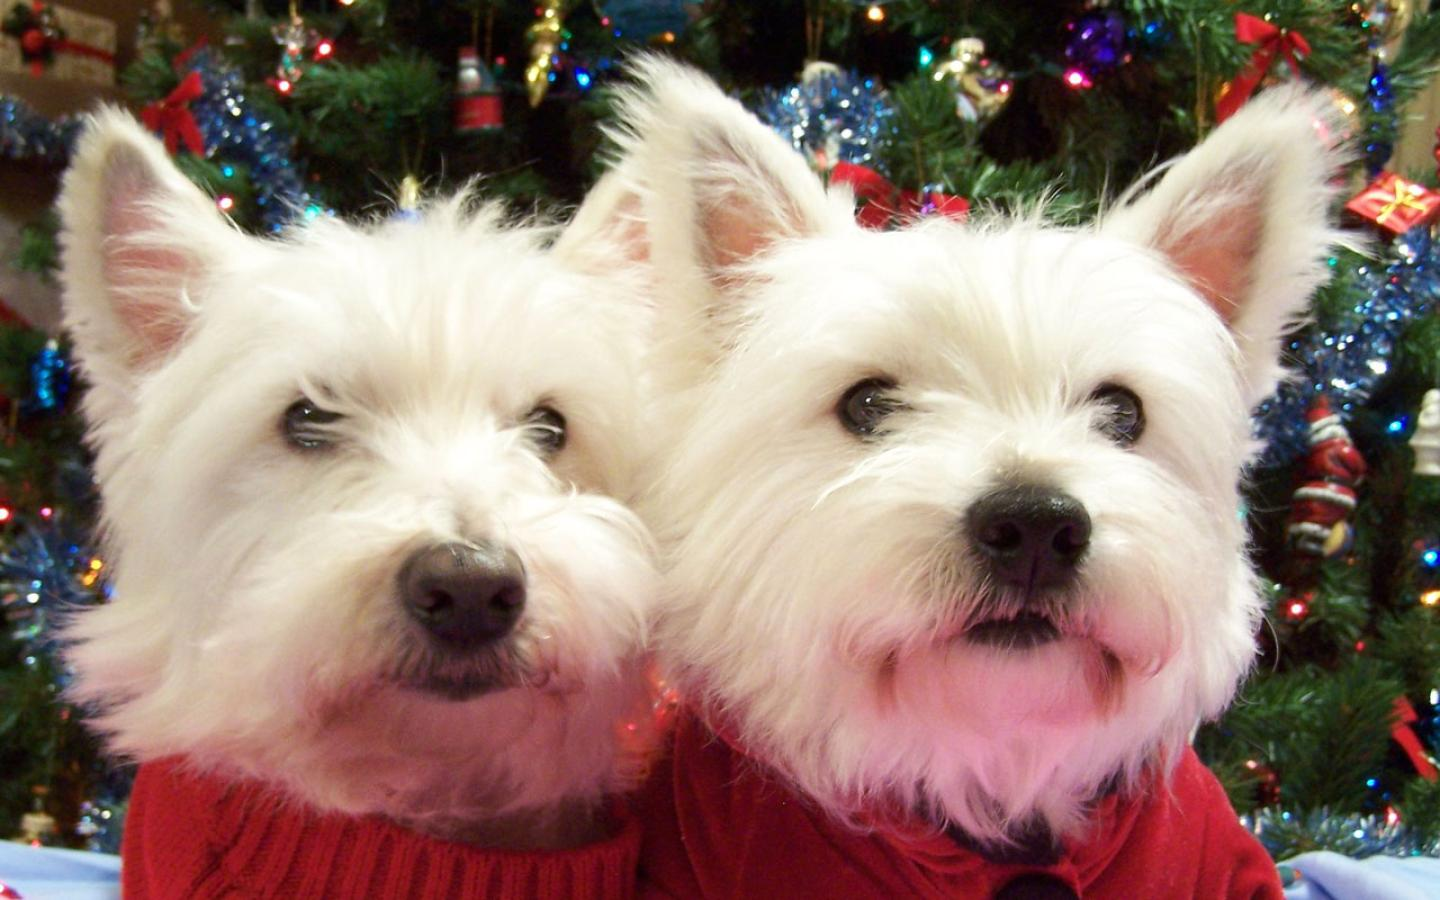 West Highland White Terrier - Looking Great at Christmas Wallpaper #3 1440 x 900